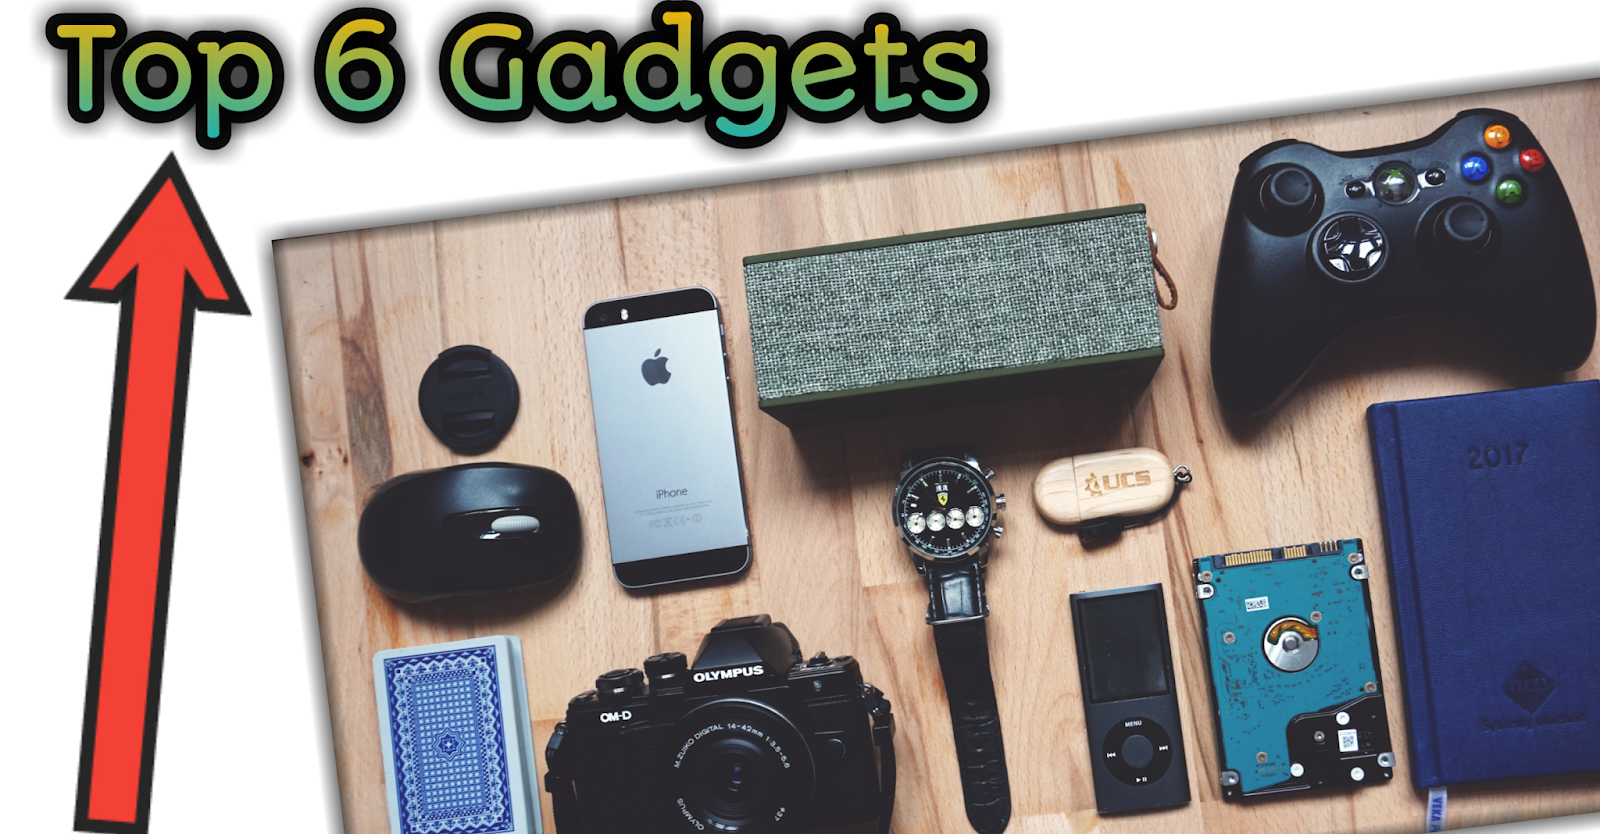 Best Gadgets Of 2020 Top Upcoming 6 Innovations of Mobile Phone that we will see by